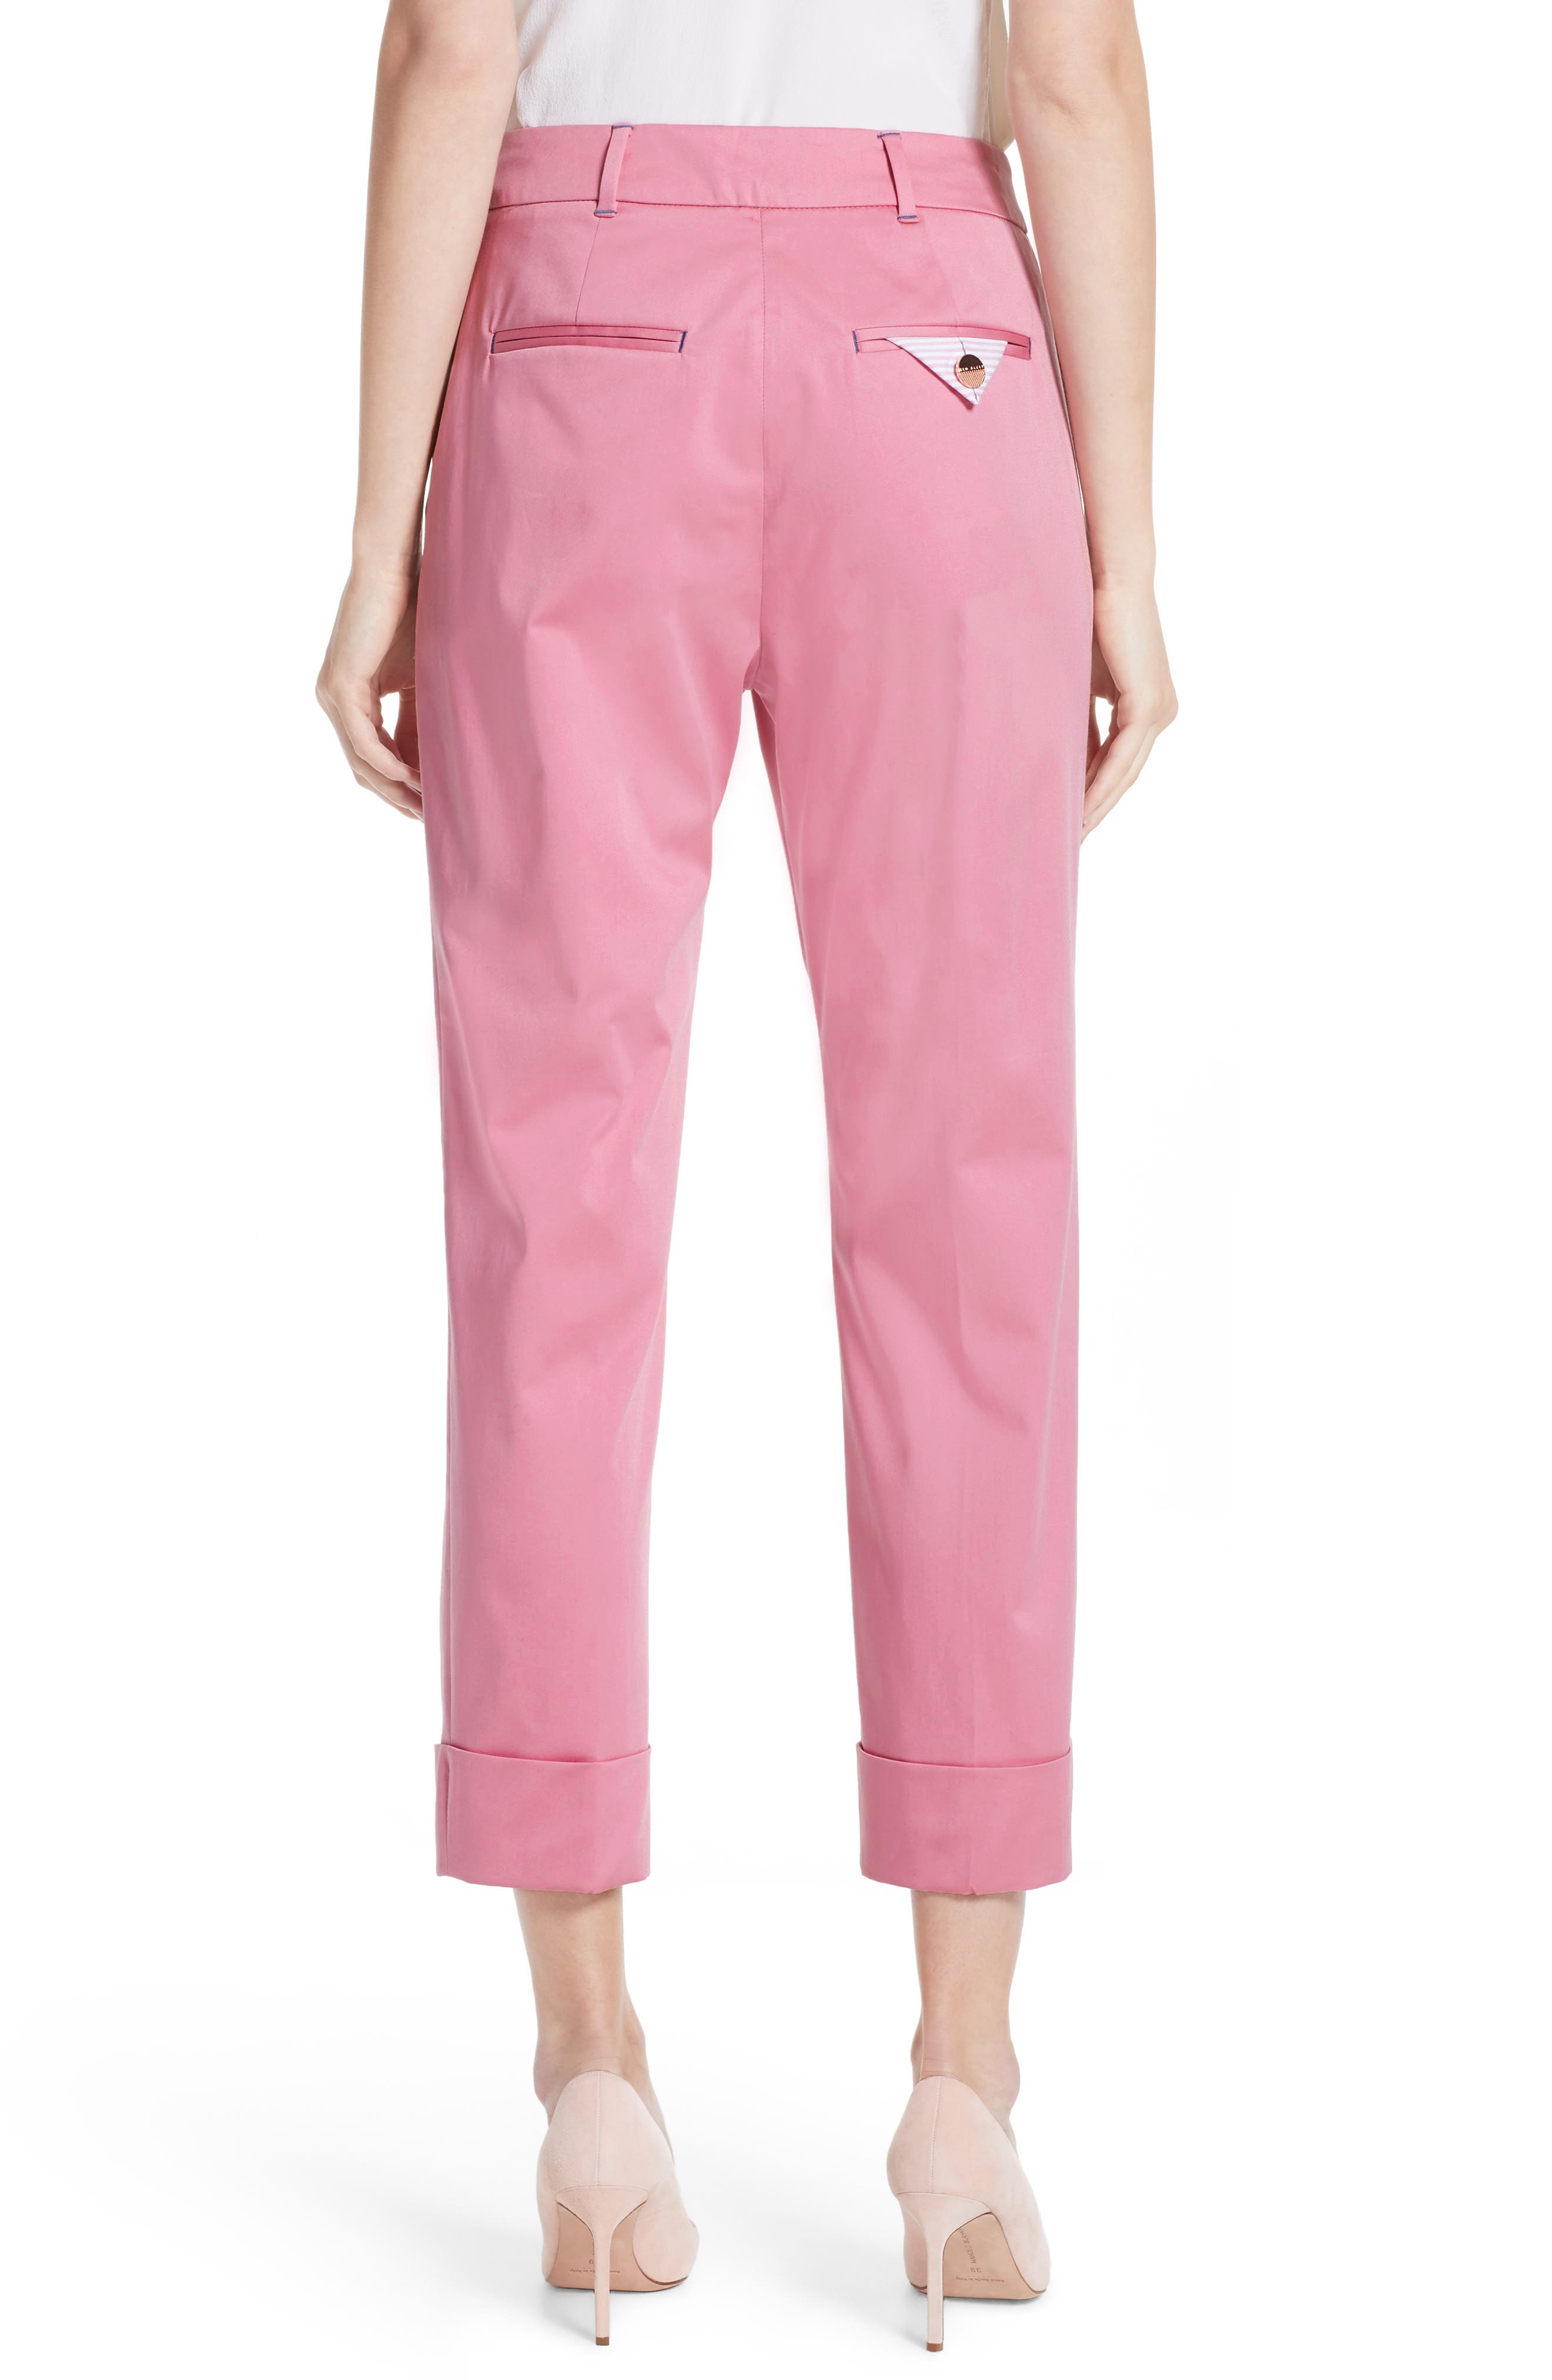 Saydii Deep Cuff Stretch Cotton Chino Pants,                             Alternate thumbnail 2, color,                             Dusky Pink